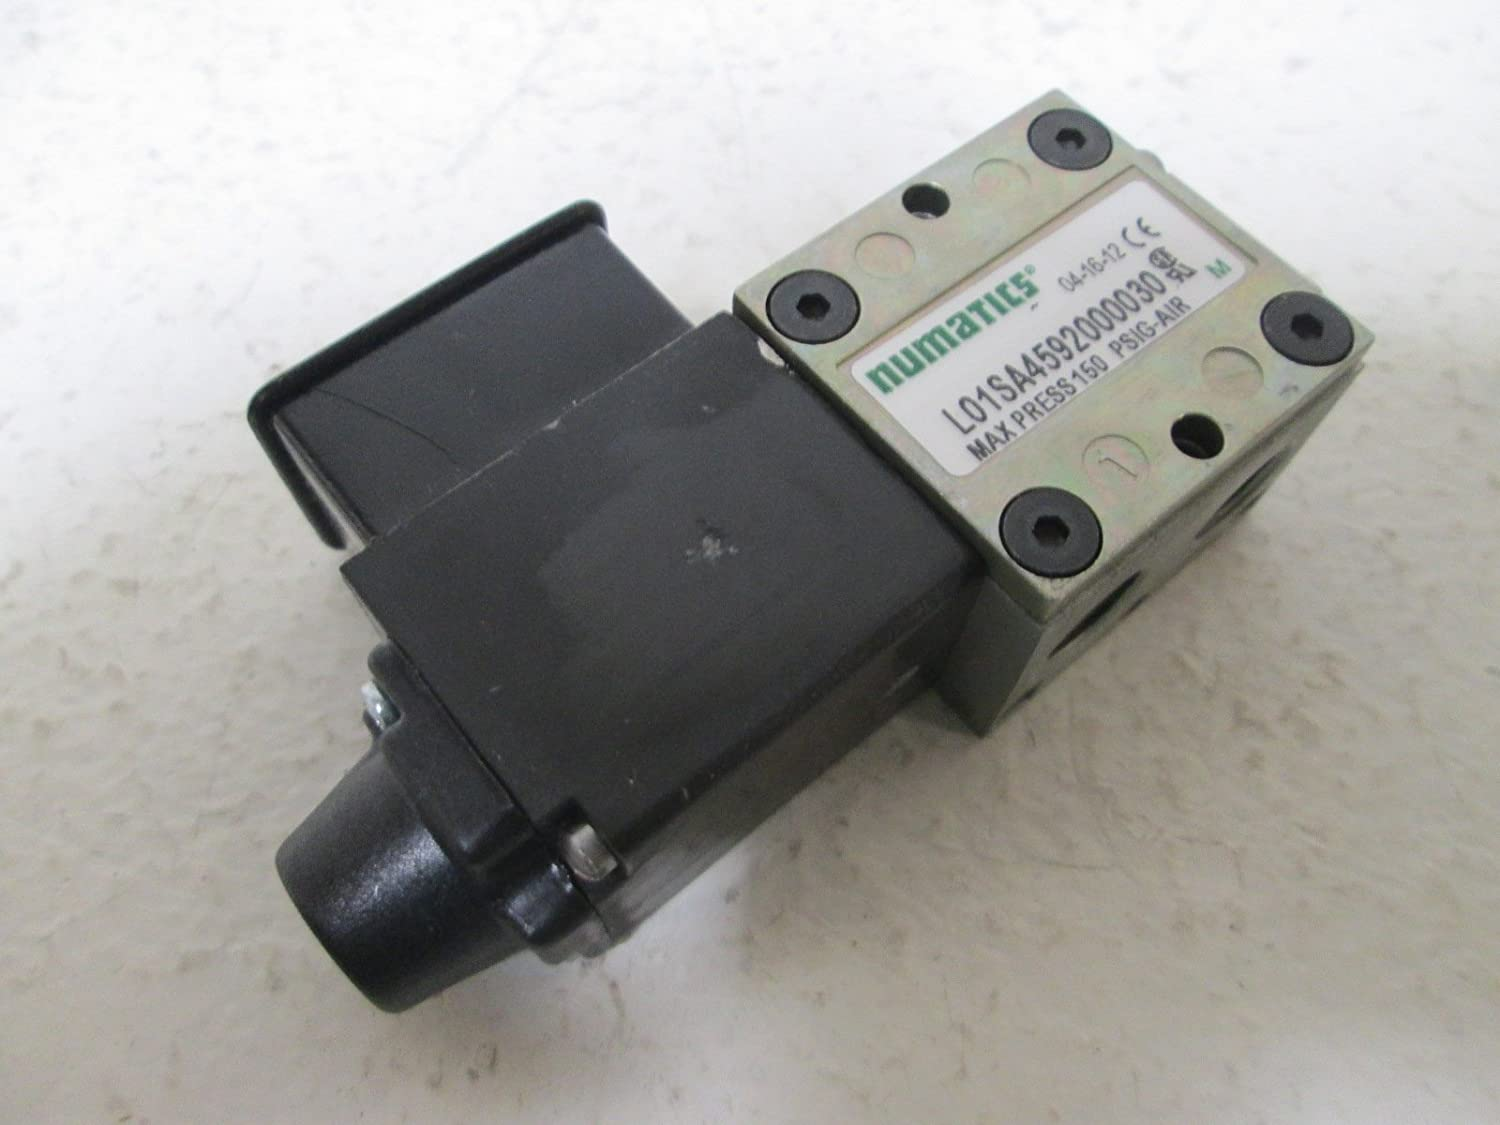 50 Hz 5//2 Spring Return 2 Position ASCO Numatics L01SA4592000030 L01 Single Direct Solenoid 50 Hz Din Plug-in 4-Way 110 VAC NPTF 1//8 Inline 120 VAC